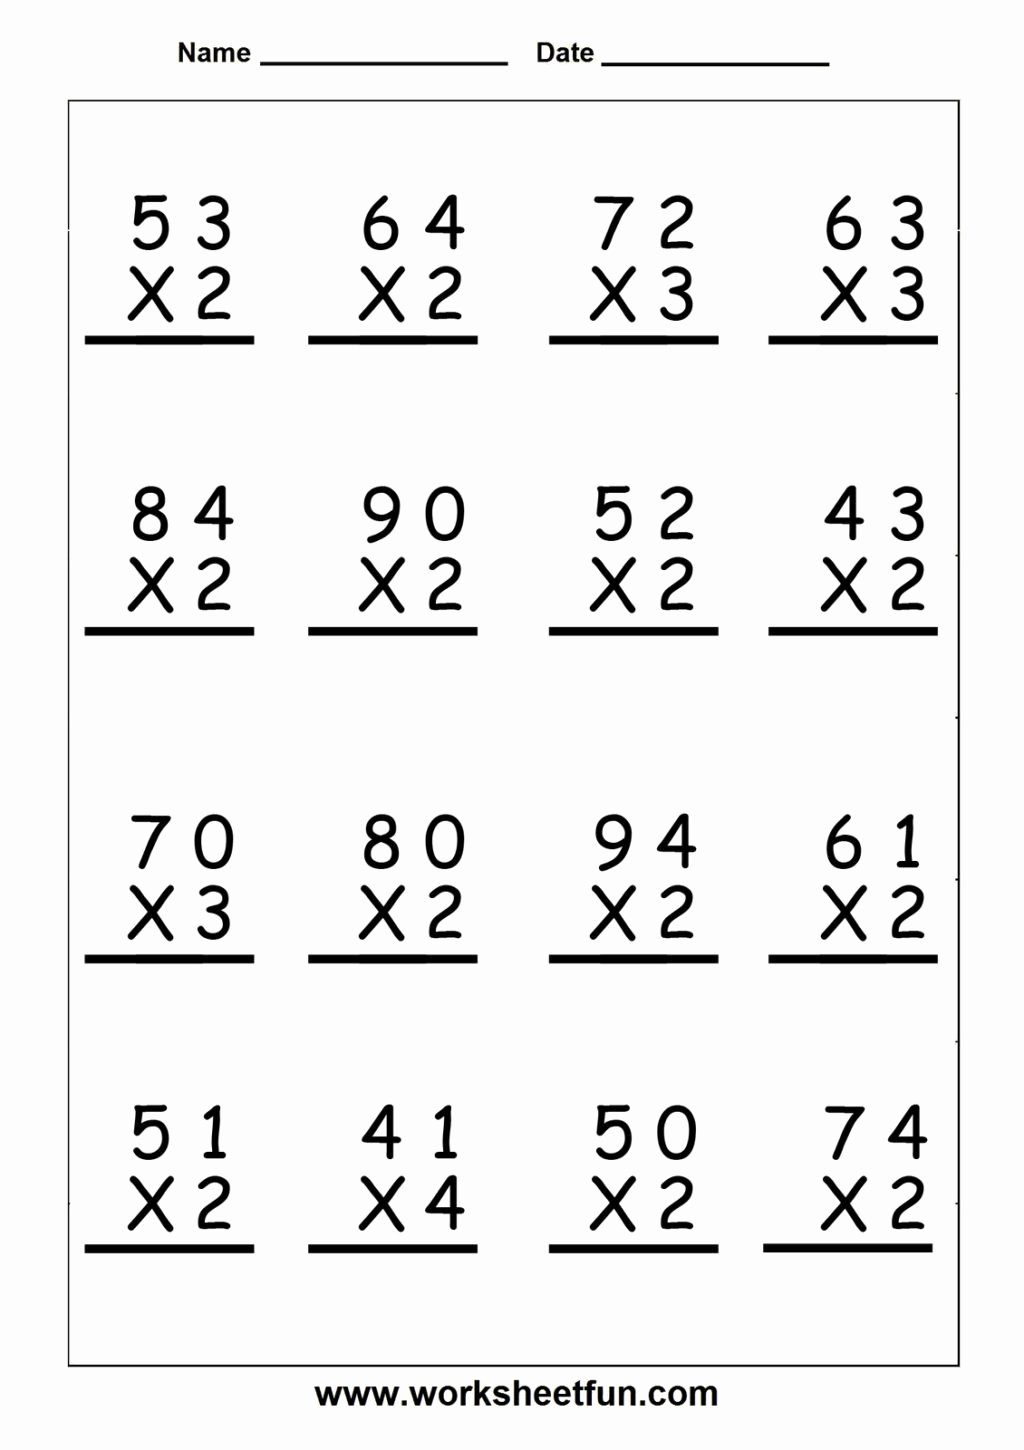 Multiplication Worksheets for Grade 3 New Worksheet Math Worksheets for Grade Maths Multiplication